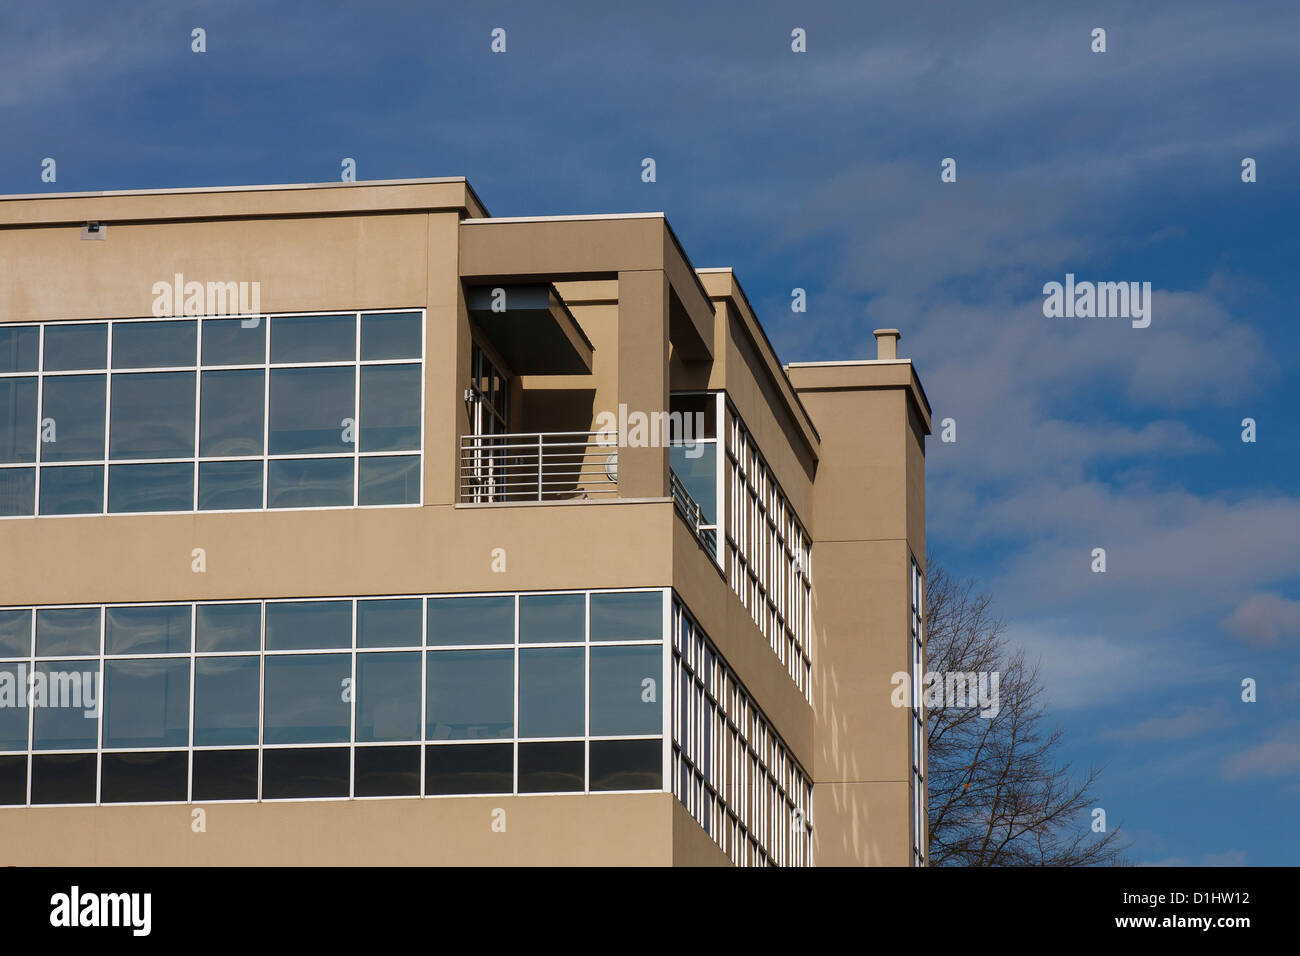 a modern stucco and glass office building with silver chrome trim